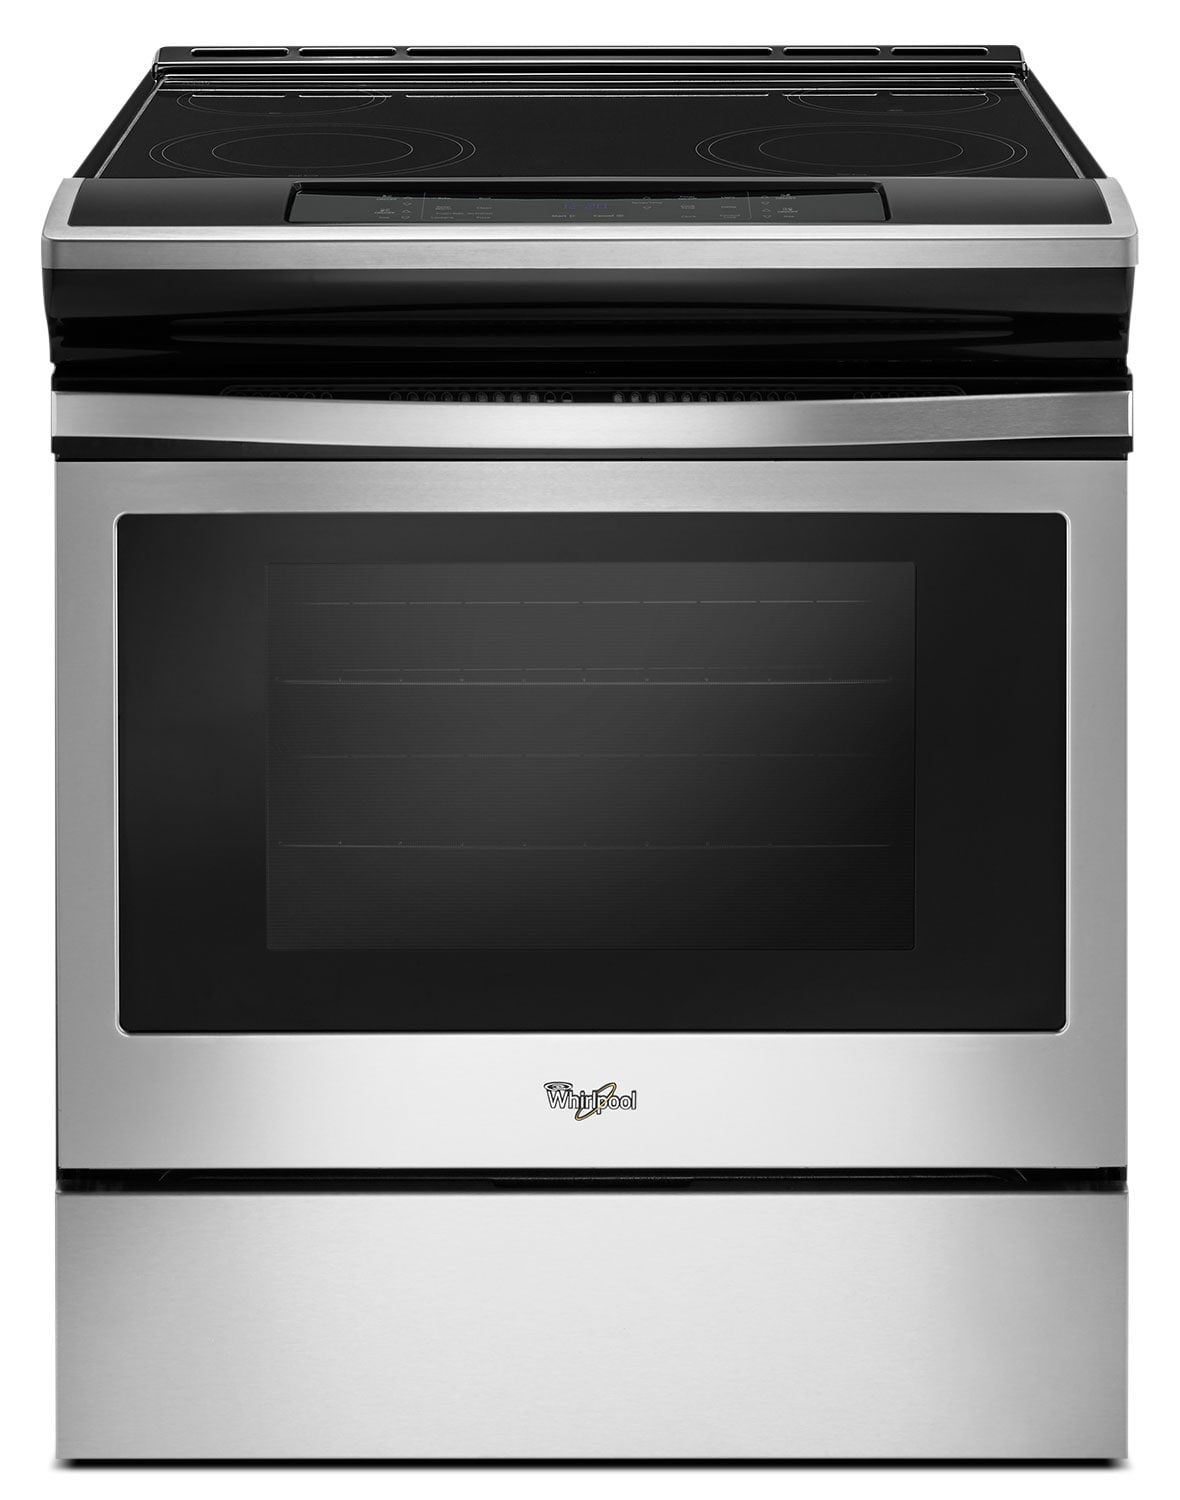 Whirlpool® 4.8 Cu. Ft. Guided Electric Front Control Range with the Easy-Wipe Ceramic Glass Cooktop